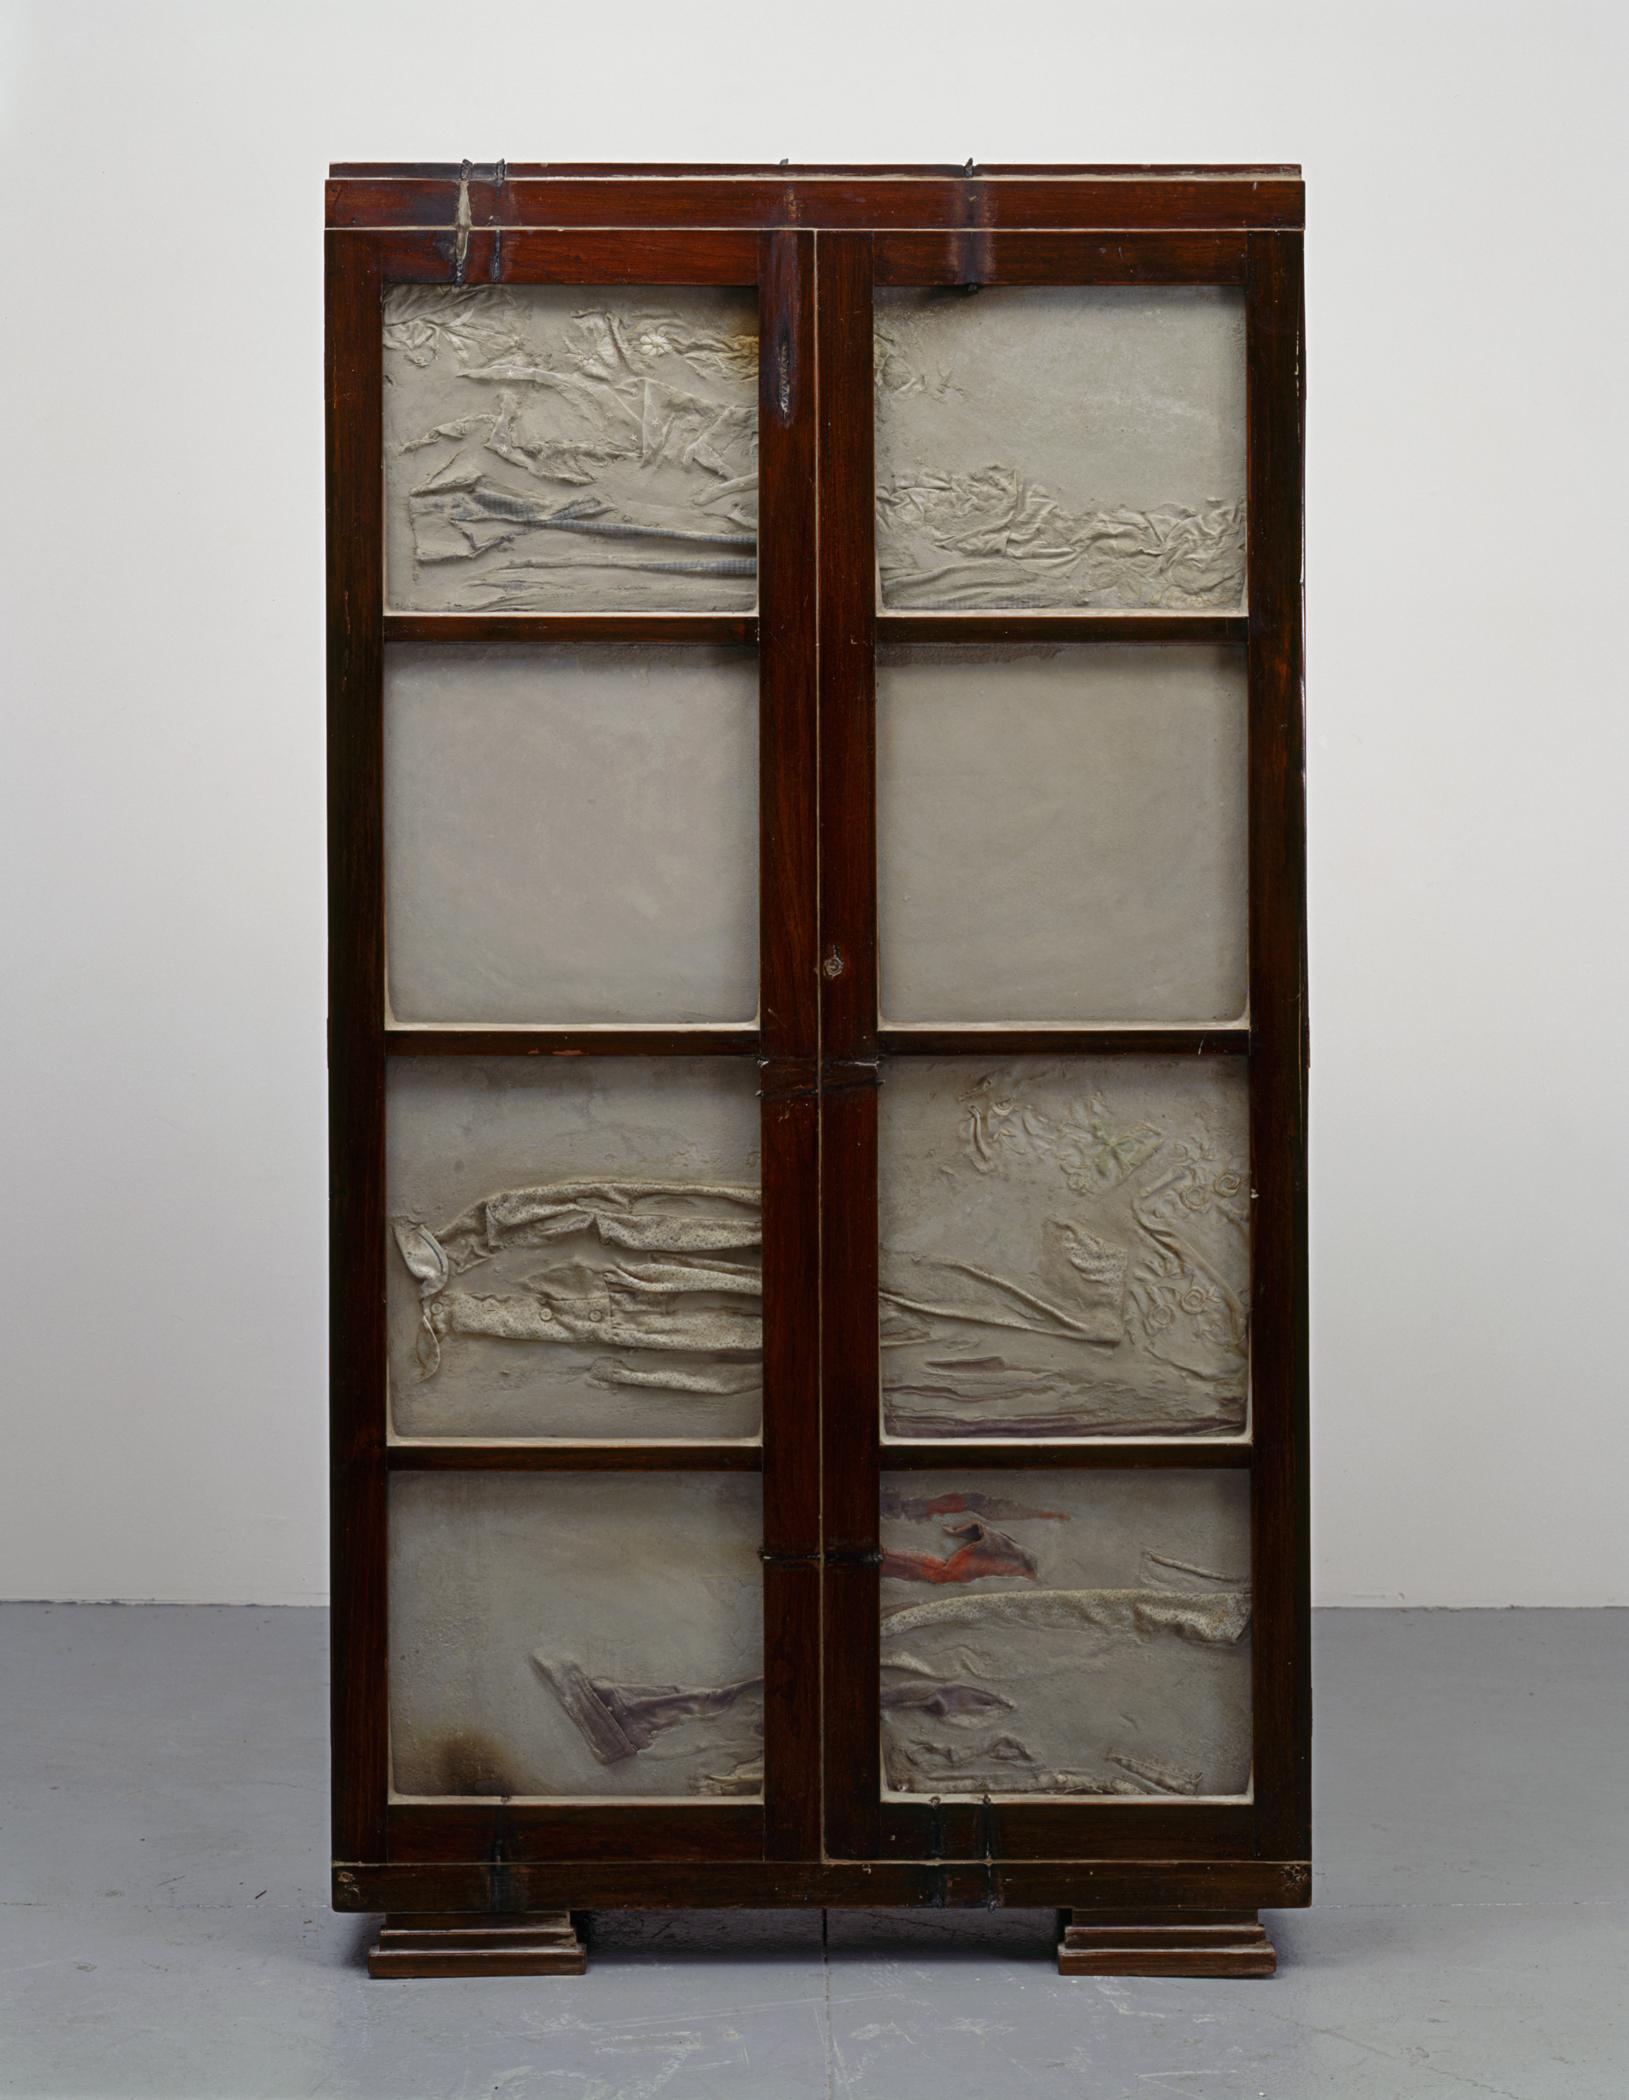 A sculpture of a wooden chest is filled with cement that has creases and ripples on the surface.